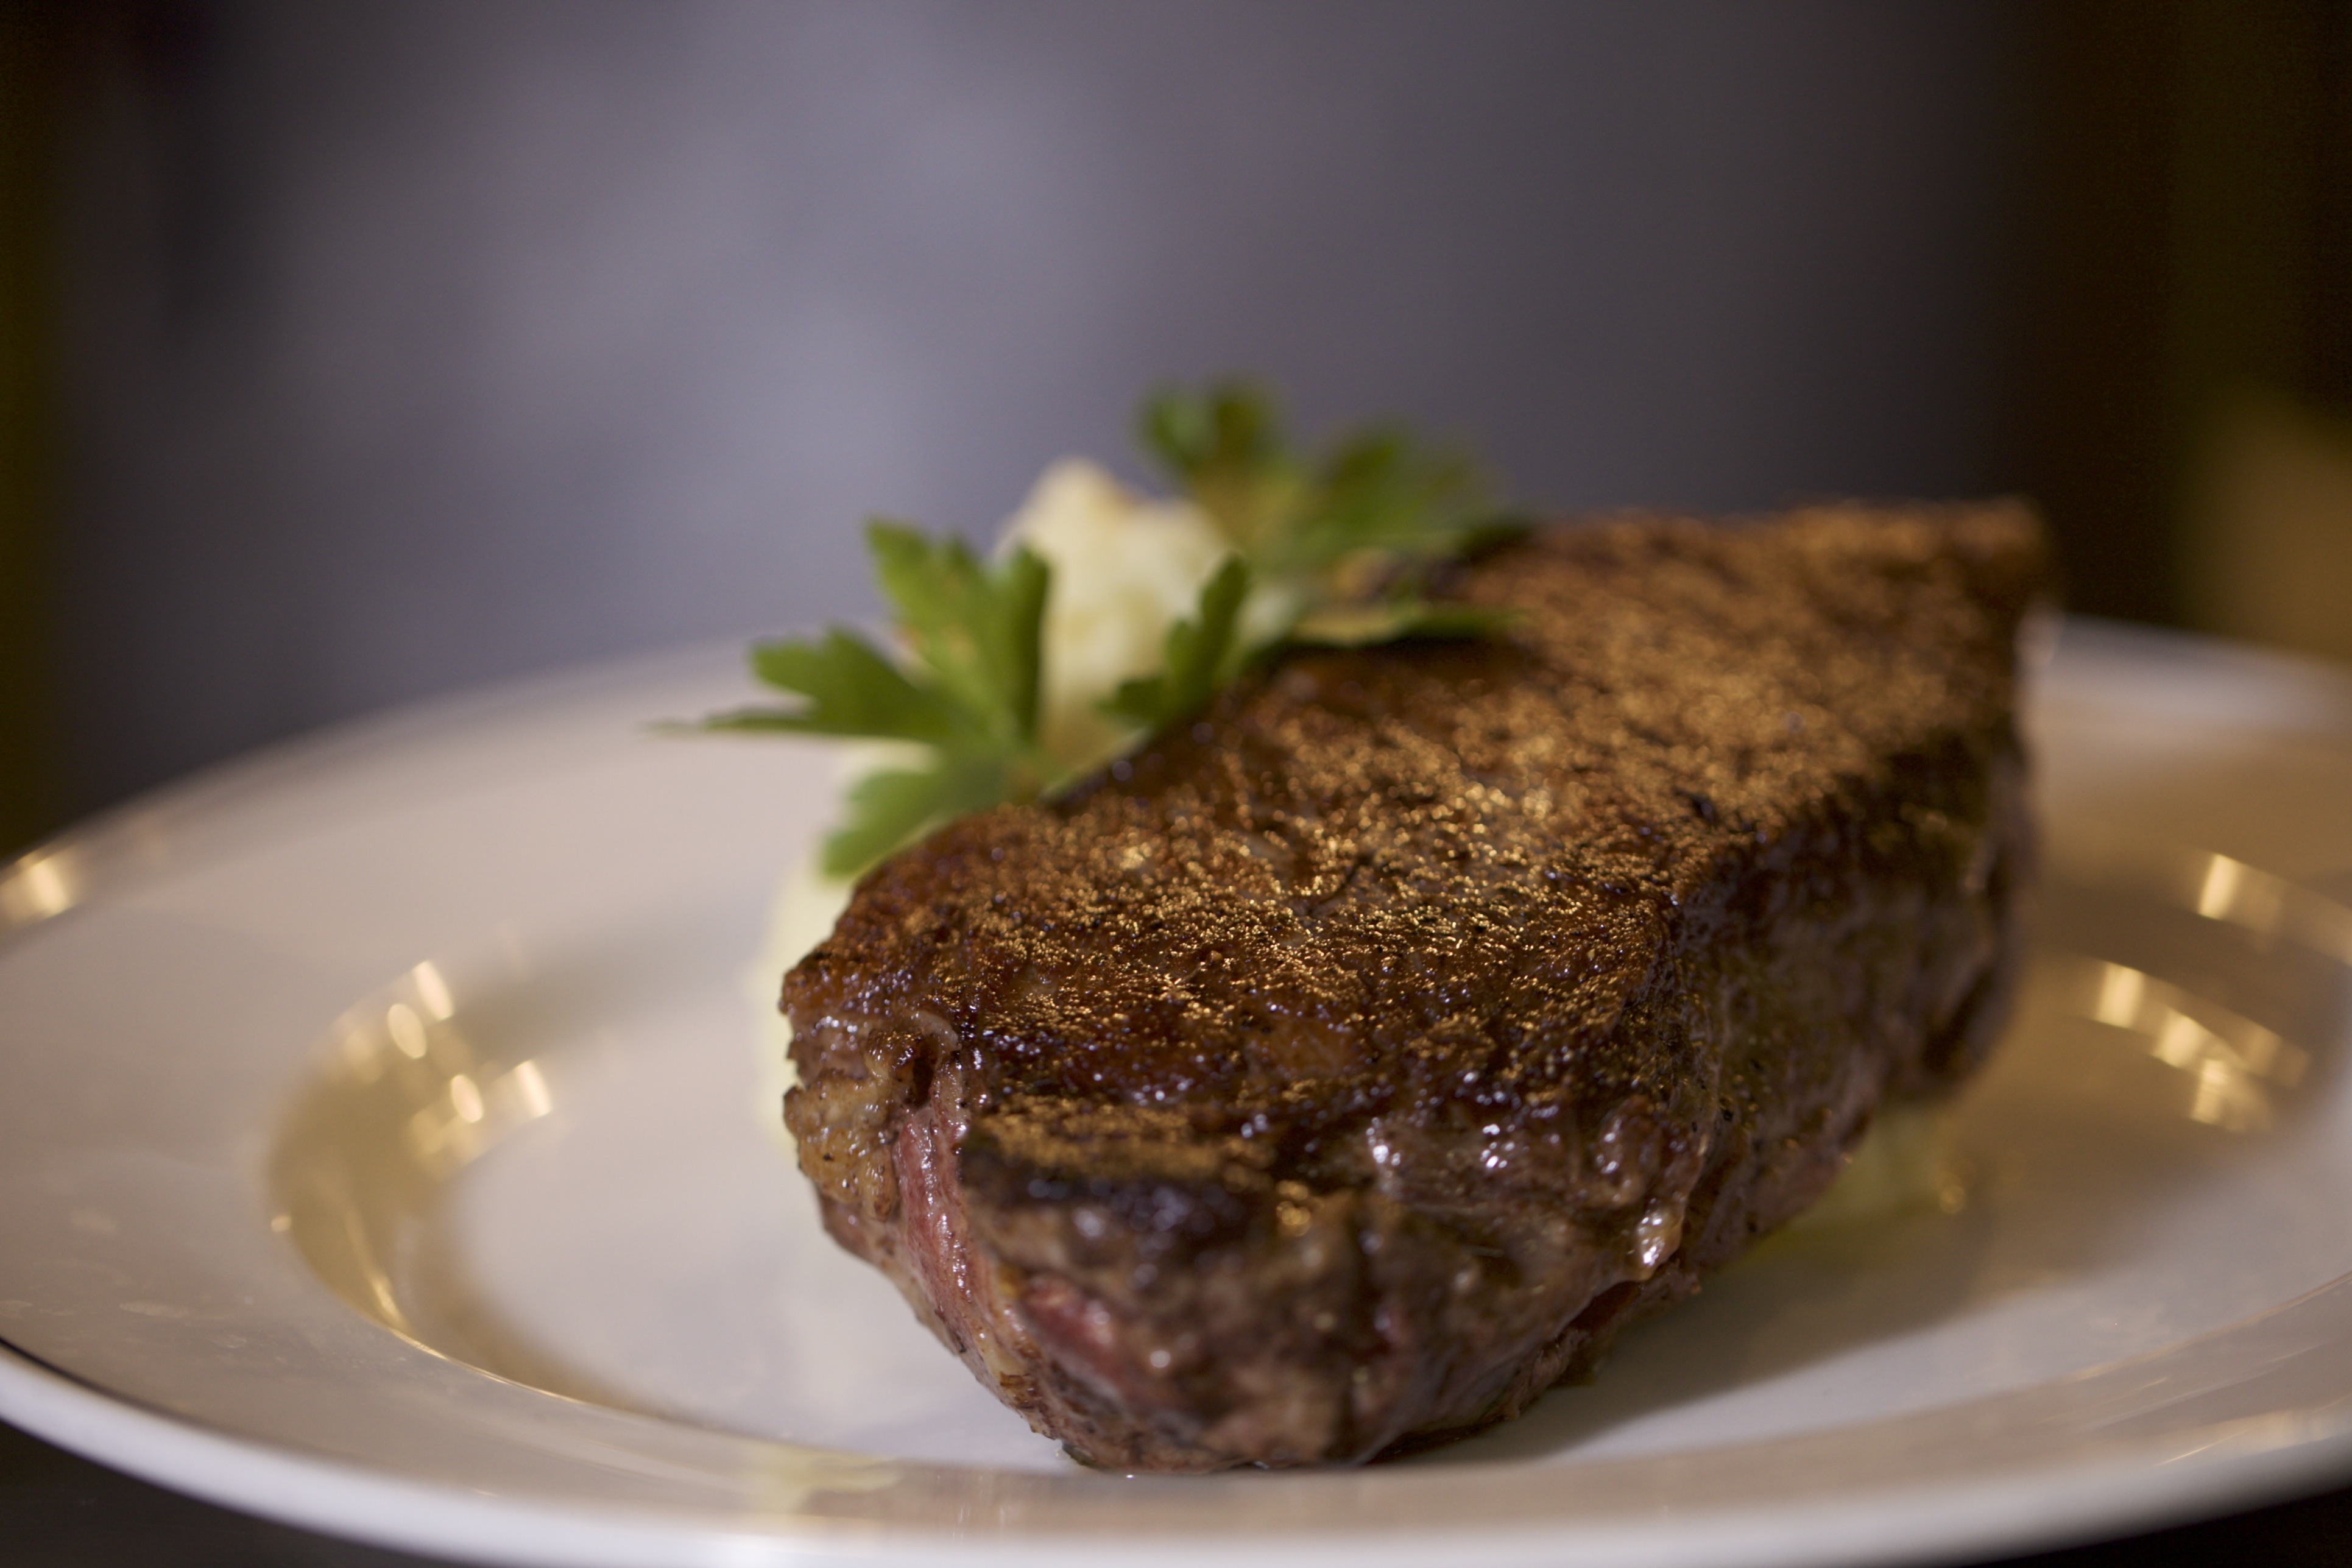 picture of New York Strip Steak garnished with parsley